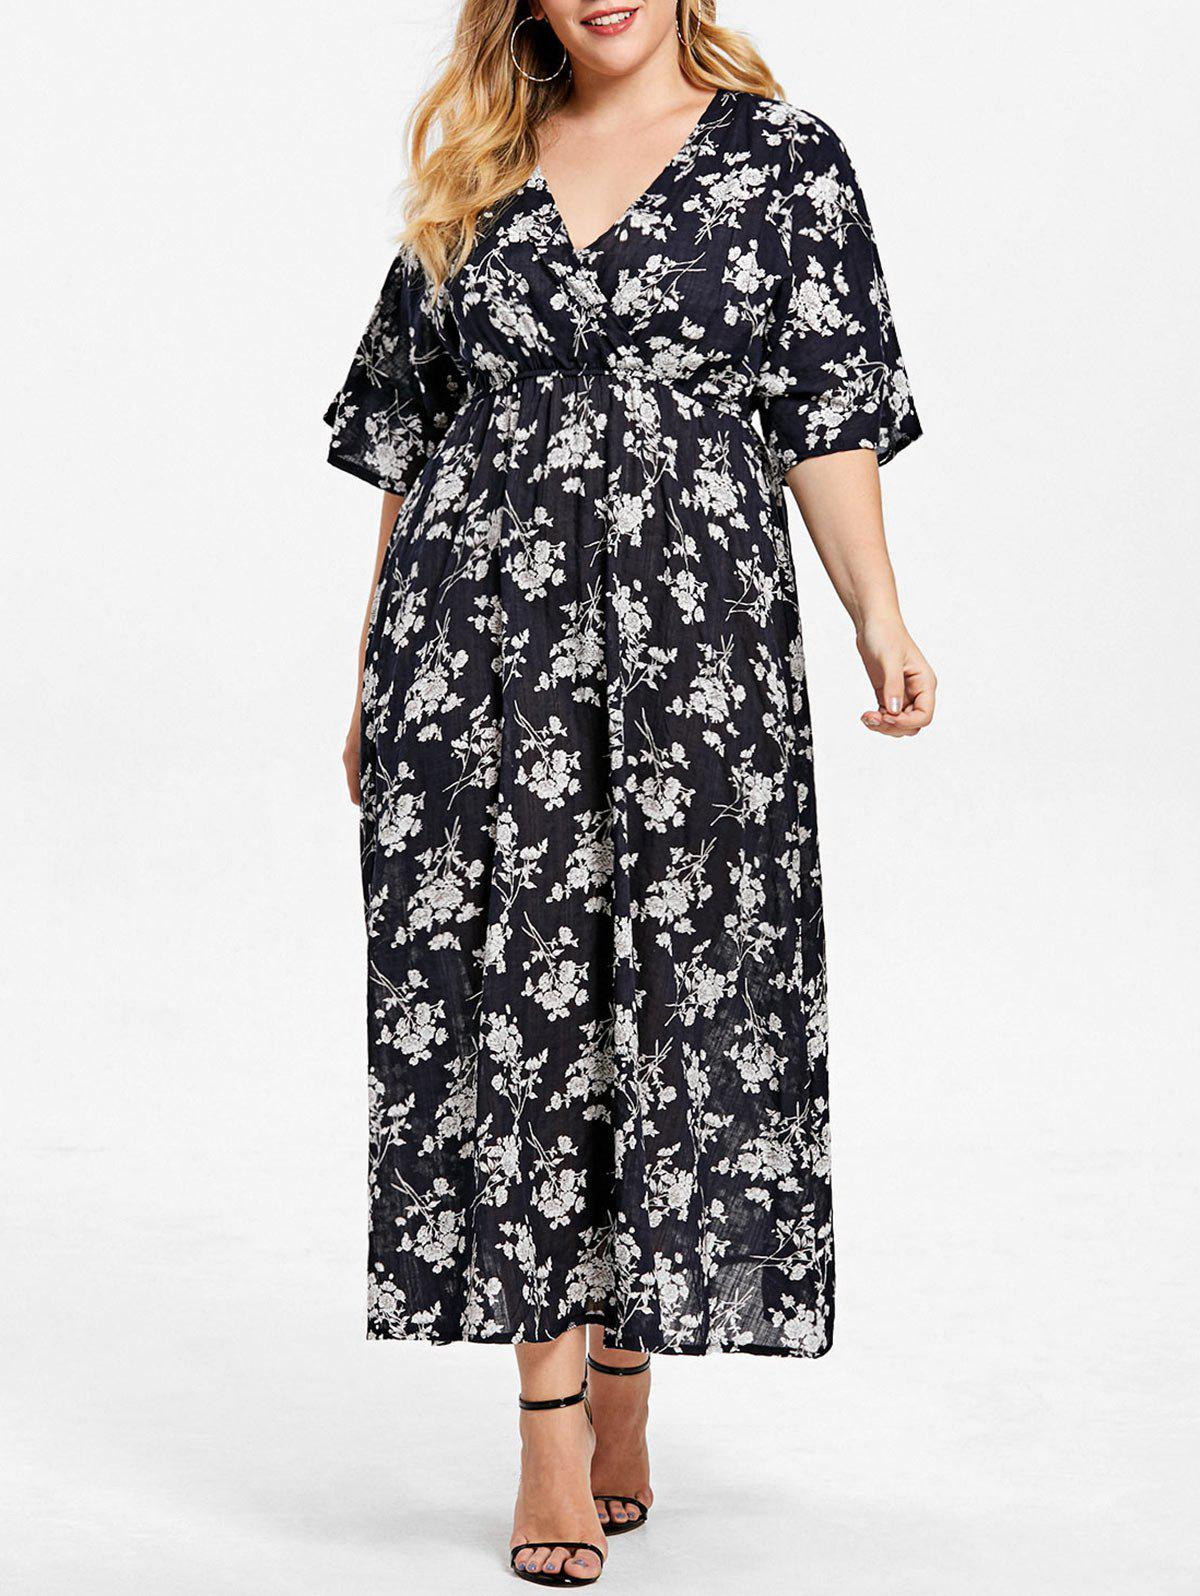 Plus Size Floral A Line Surplice Dress